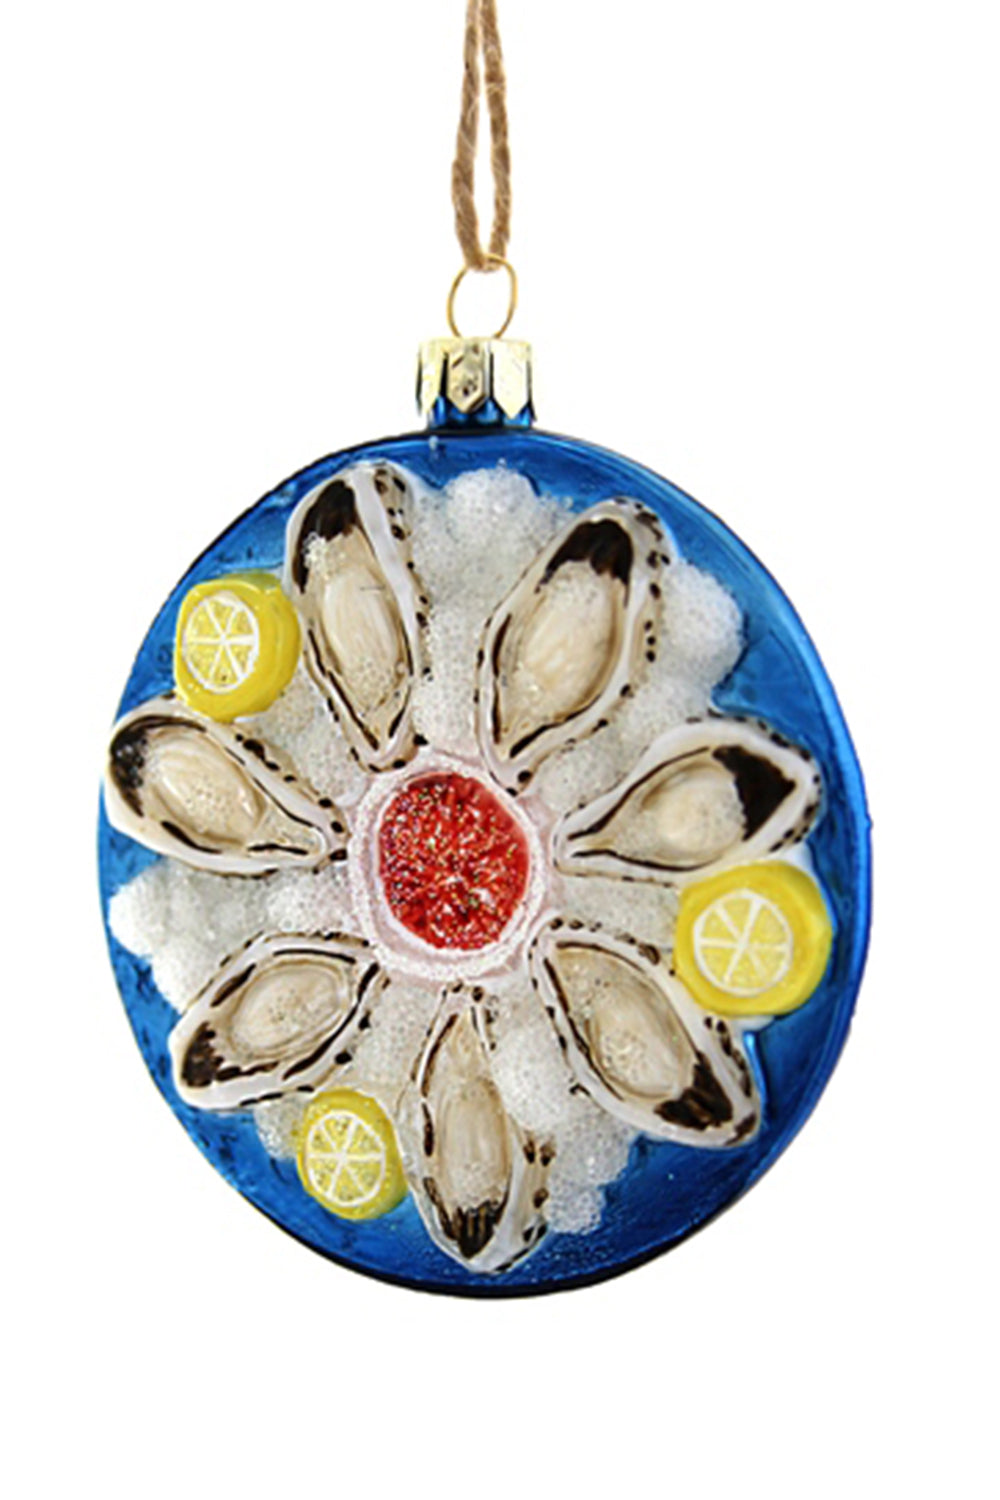 Glass Ornament - Plate of Oysters